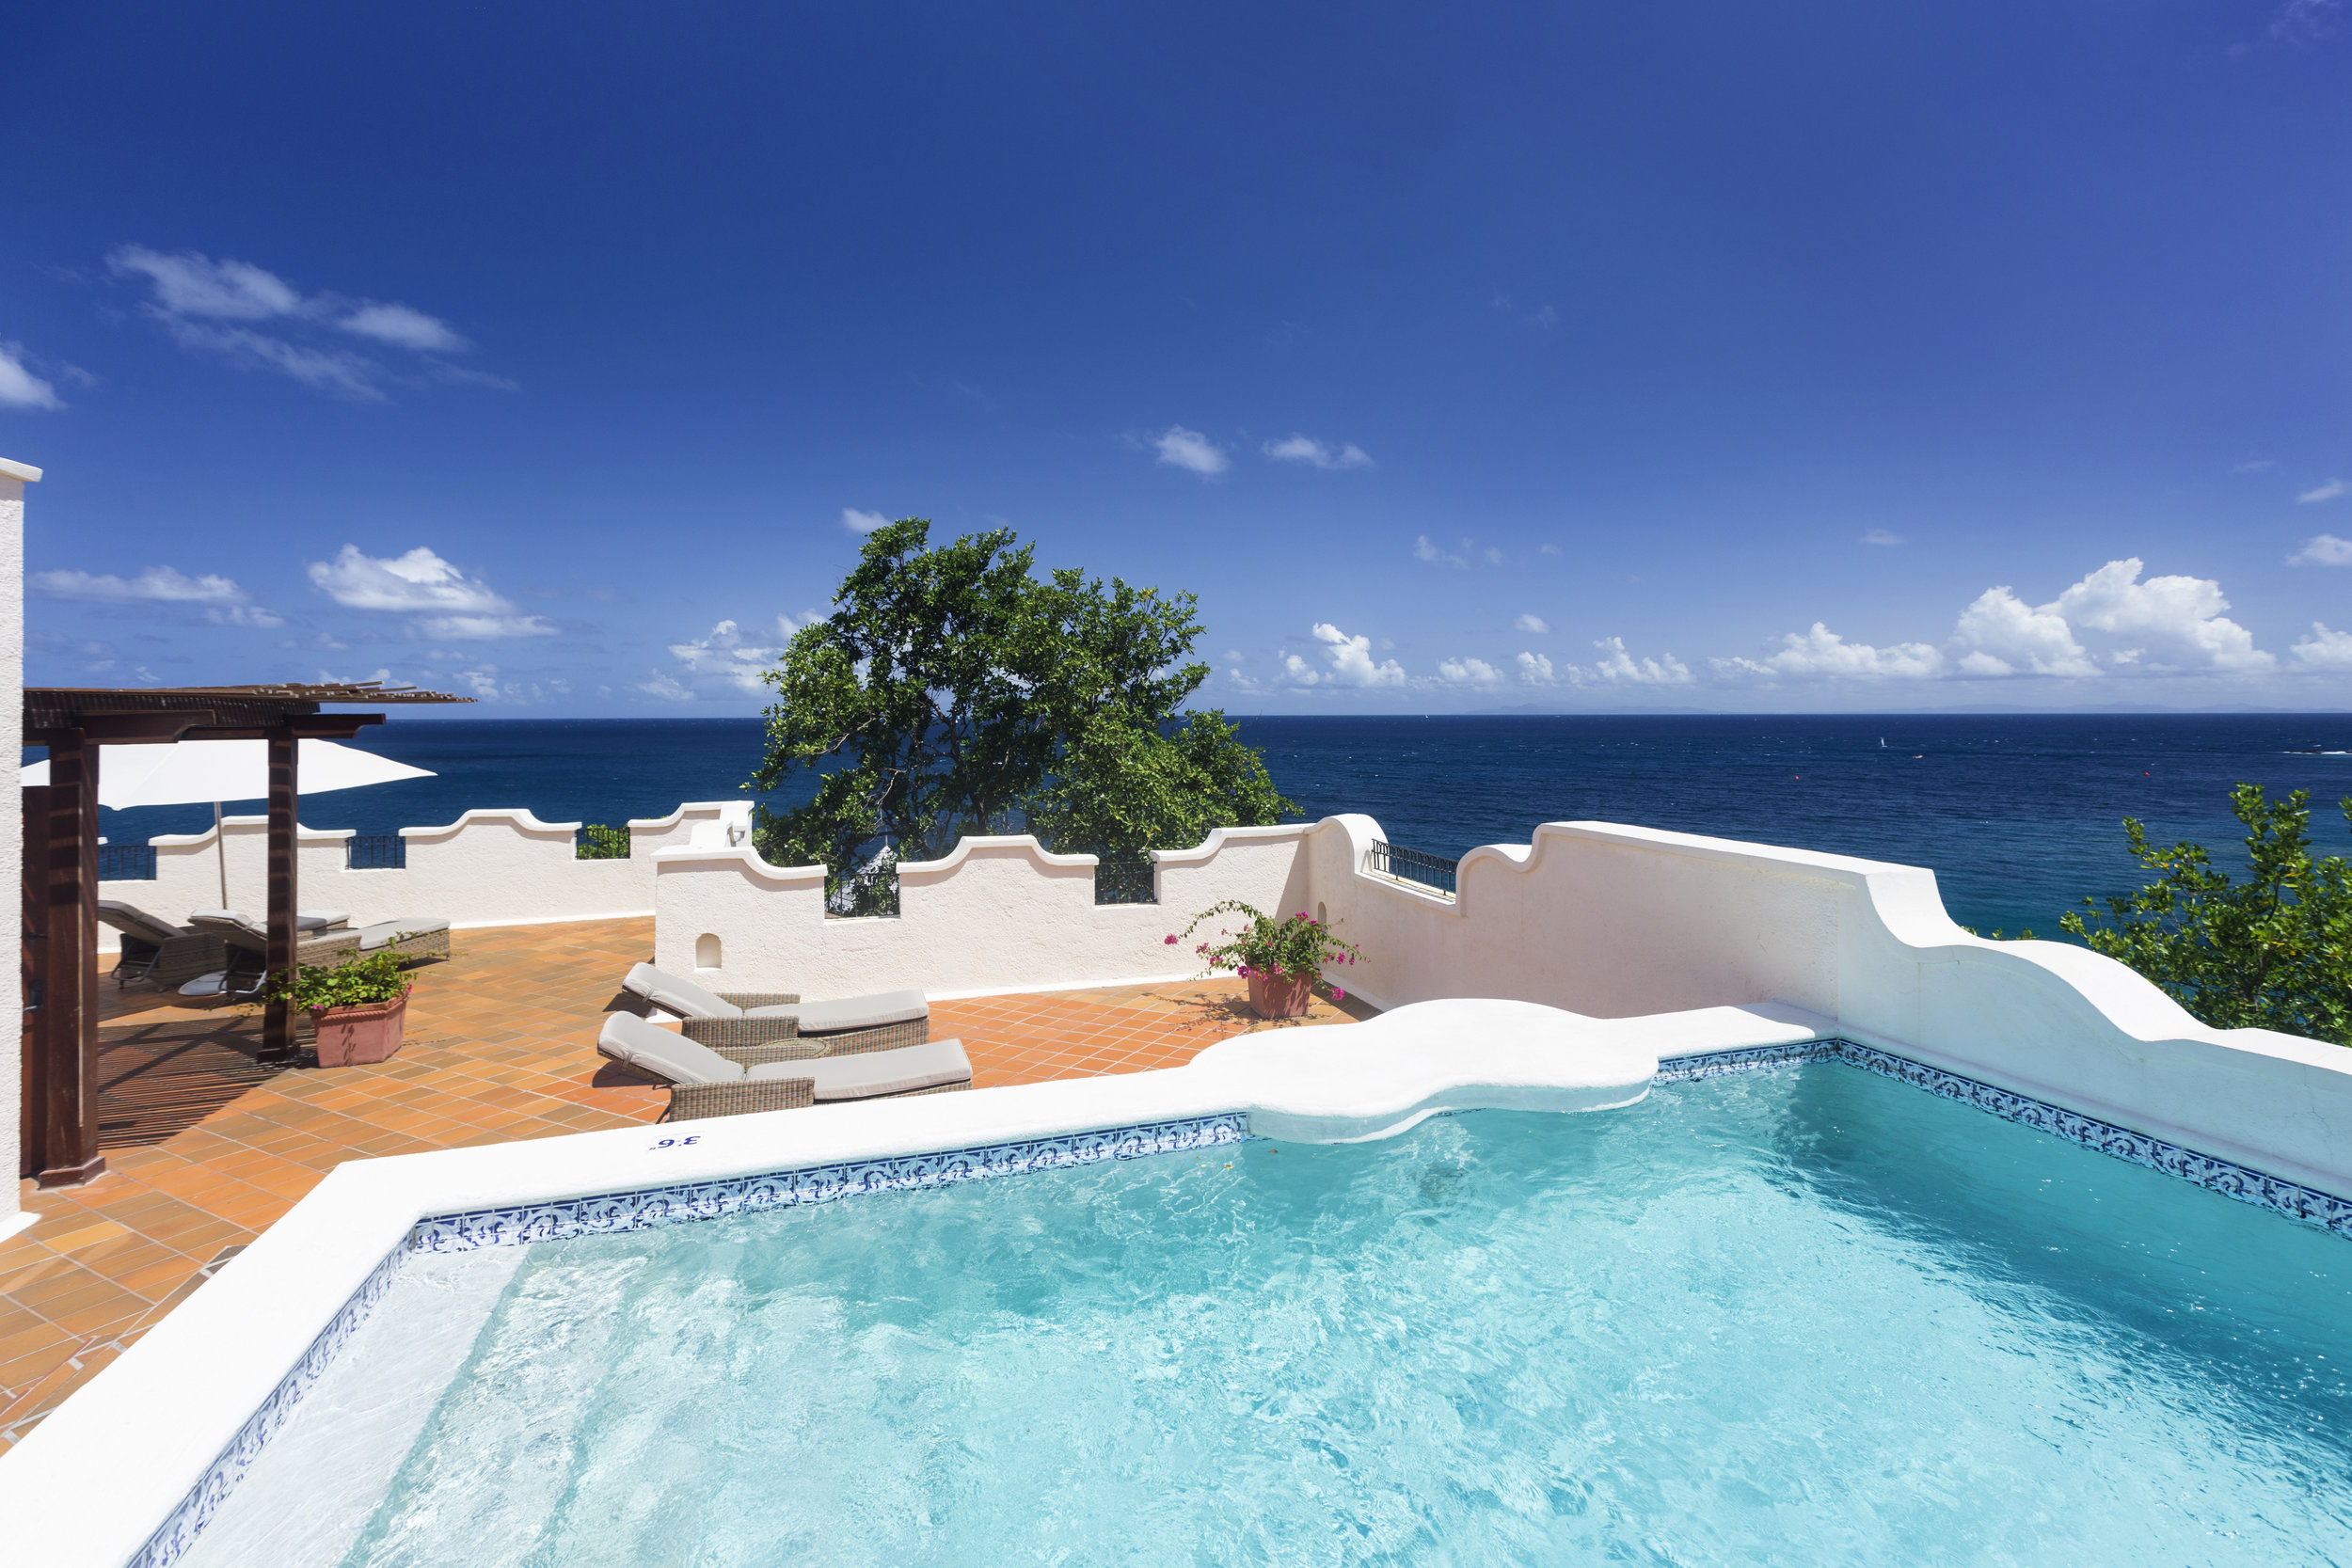 Ocean View Villa Suite with Pool and Terrace.jpg